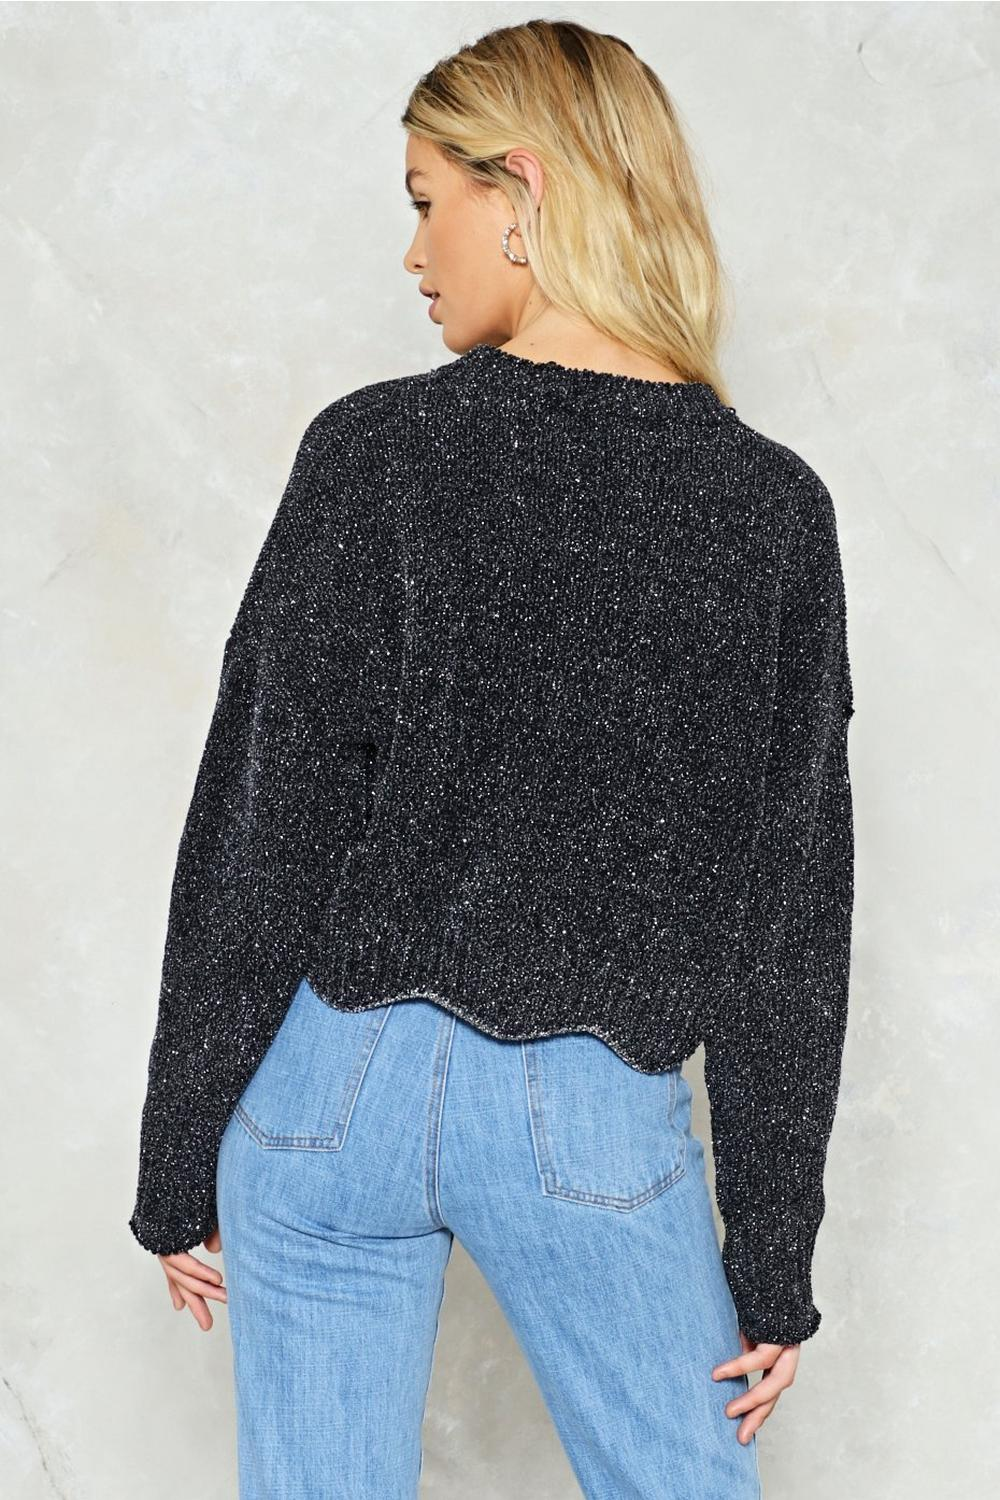 Big Break Glitter Sweater | Shop Clothes at Nasty Gal!